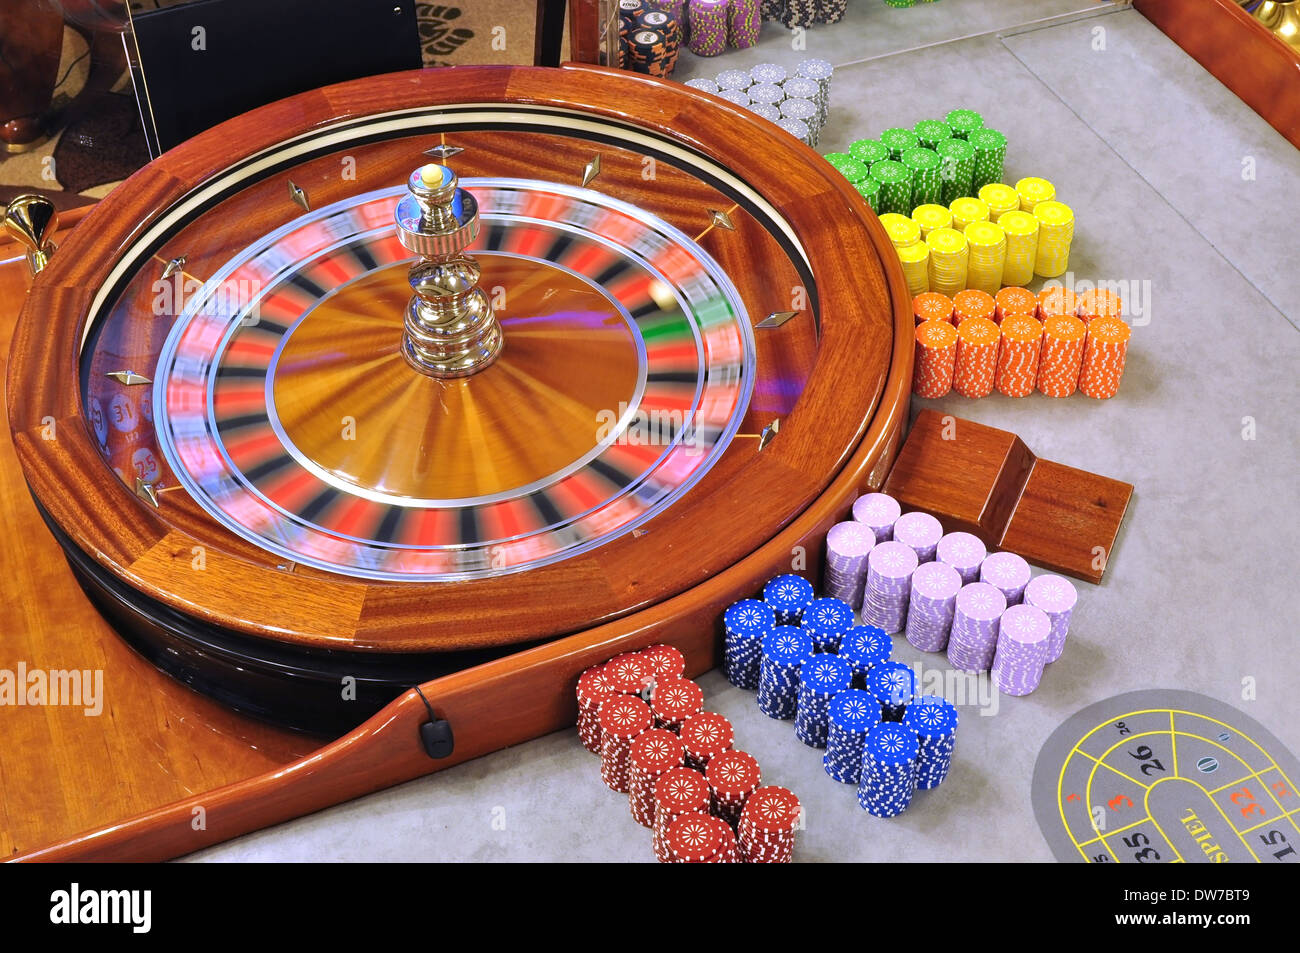 image with a casino spinning roulette wheel with the ball - Stock Image